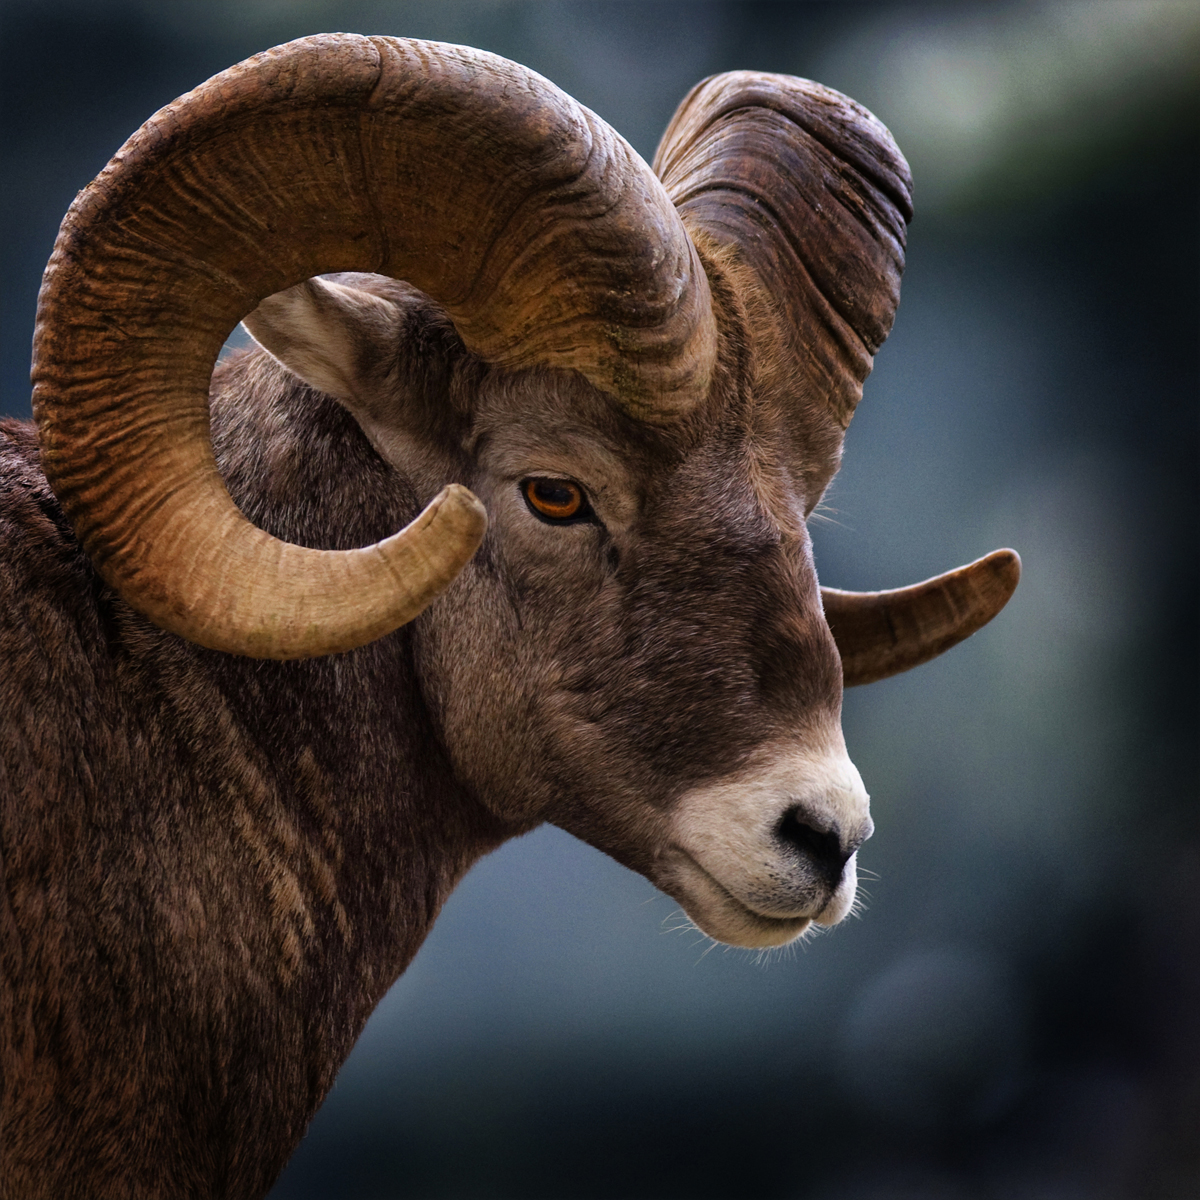 Ram Big Horn >> Ram, the Sure-footed